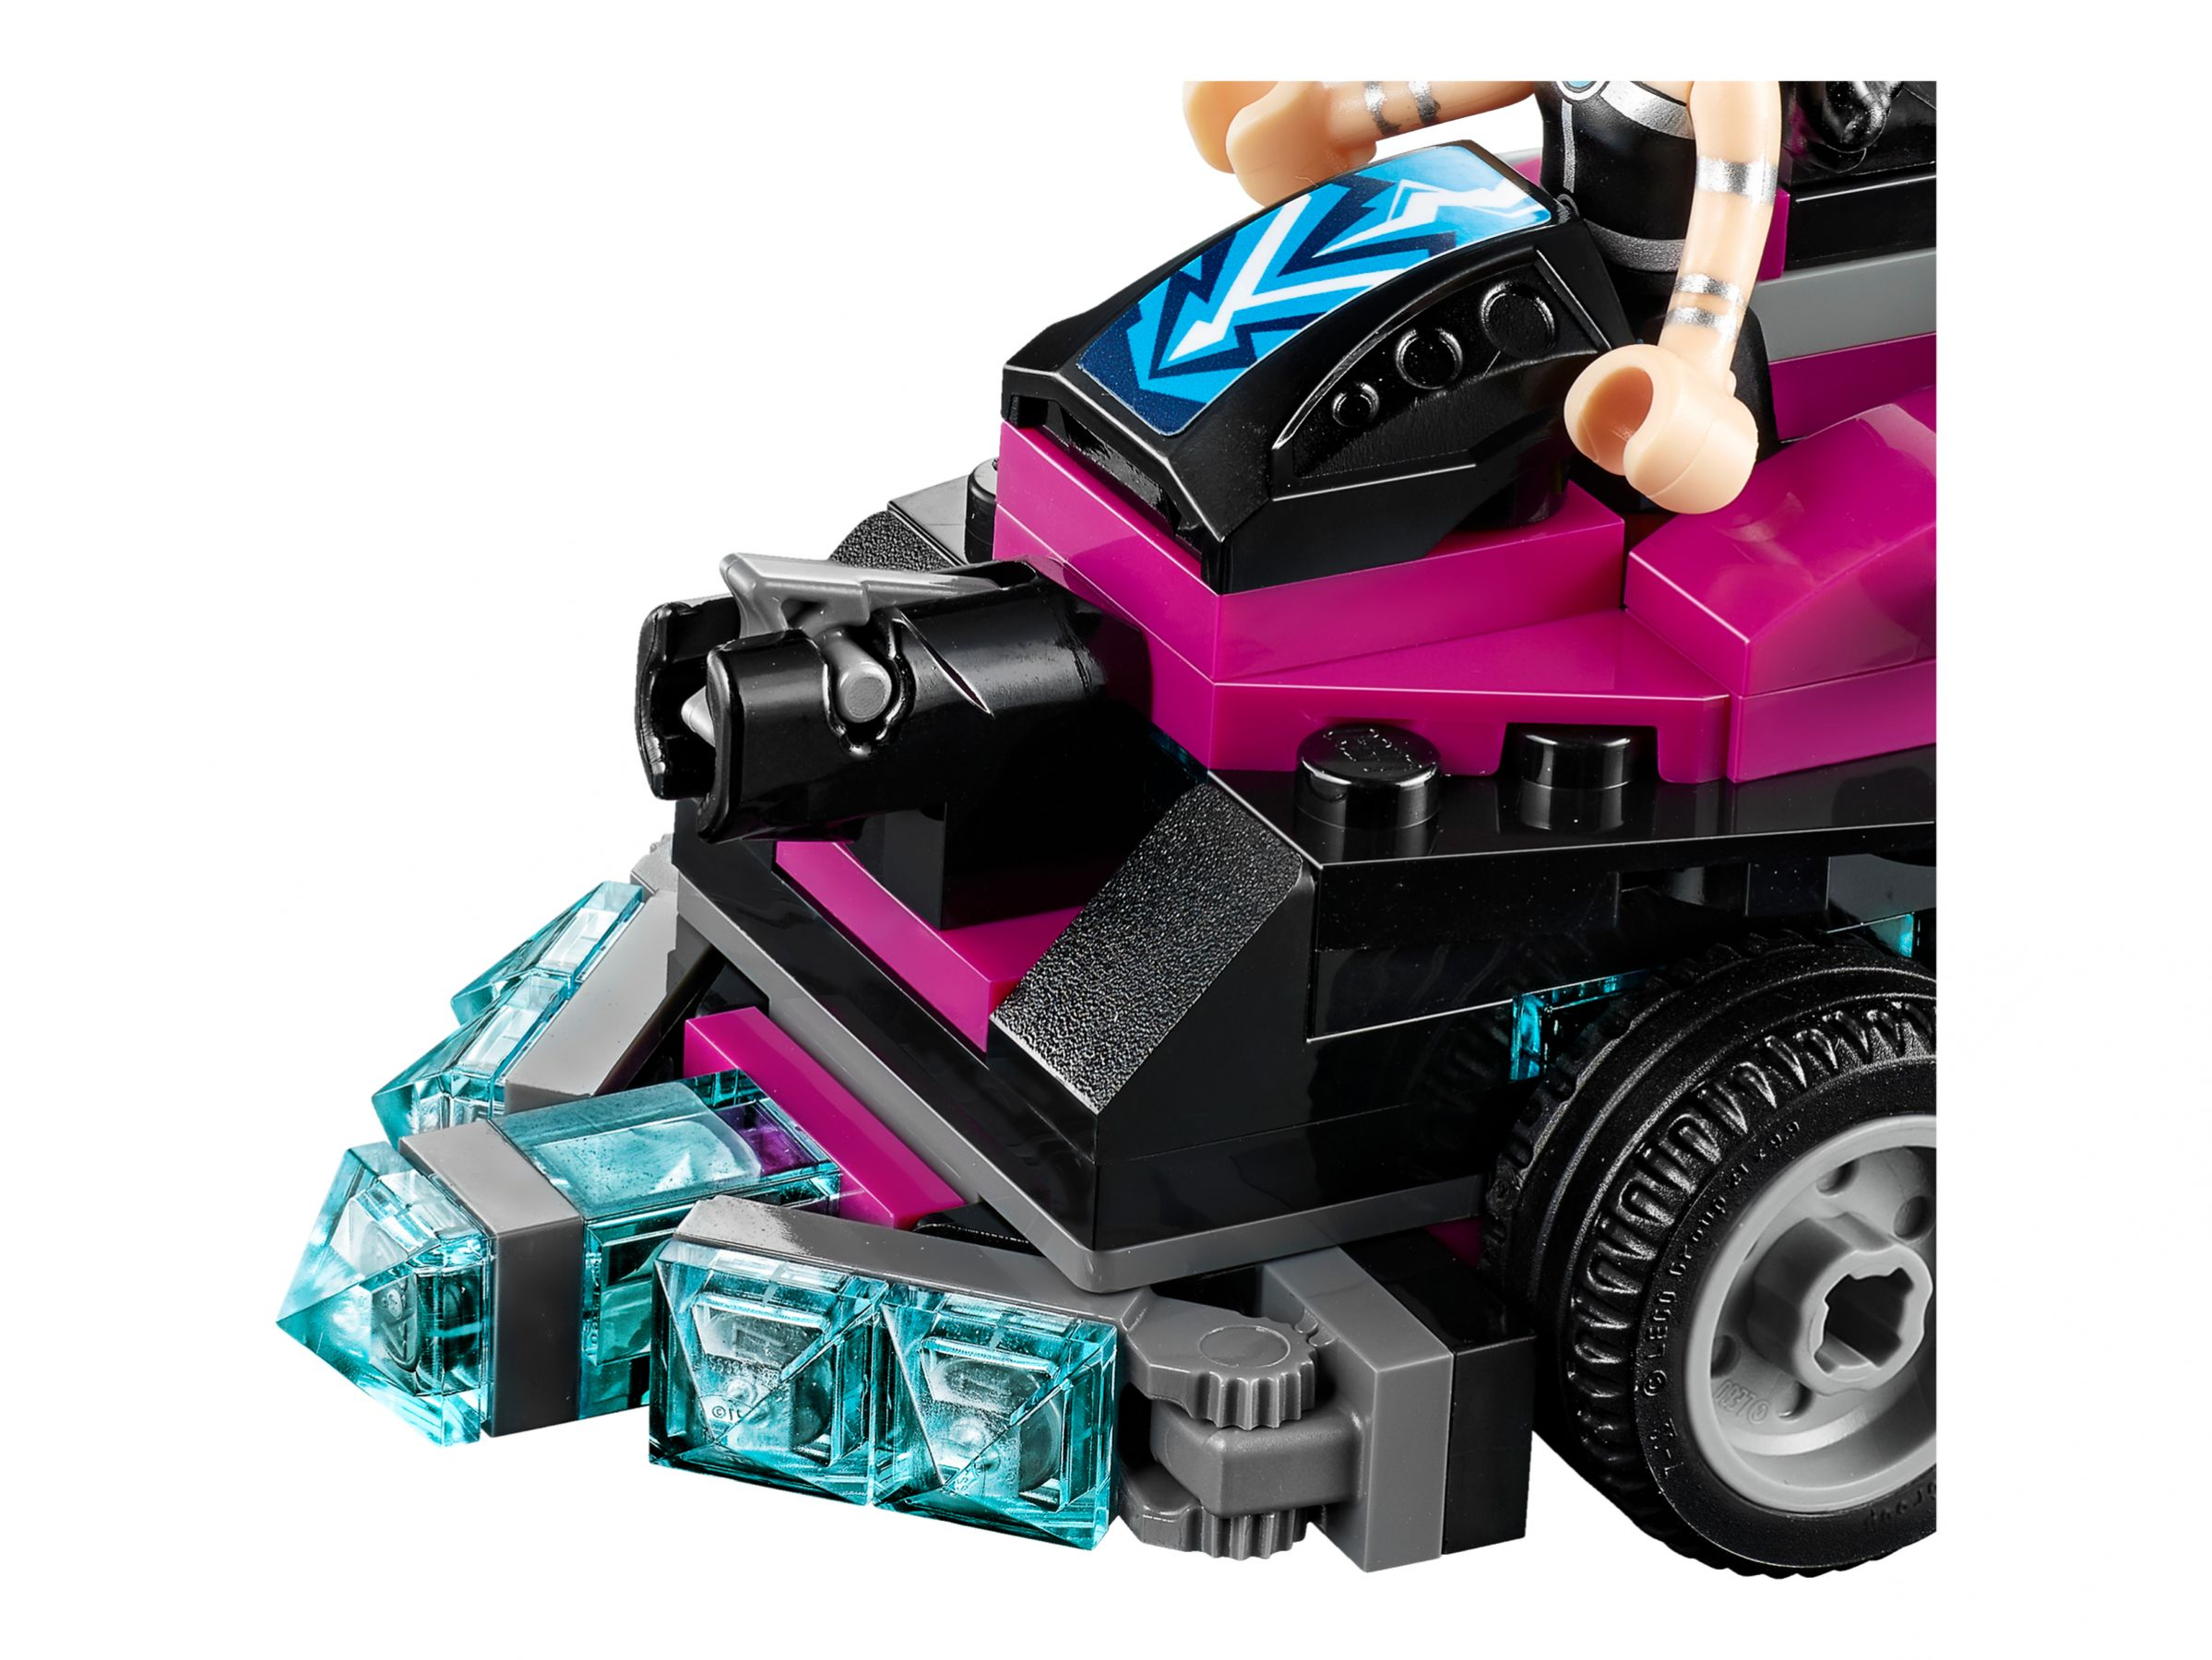 LEGO Super Heroes 41233 Lashinas Action-Cruiser LEGO_41233_alt3.jpg